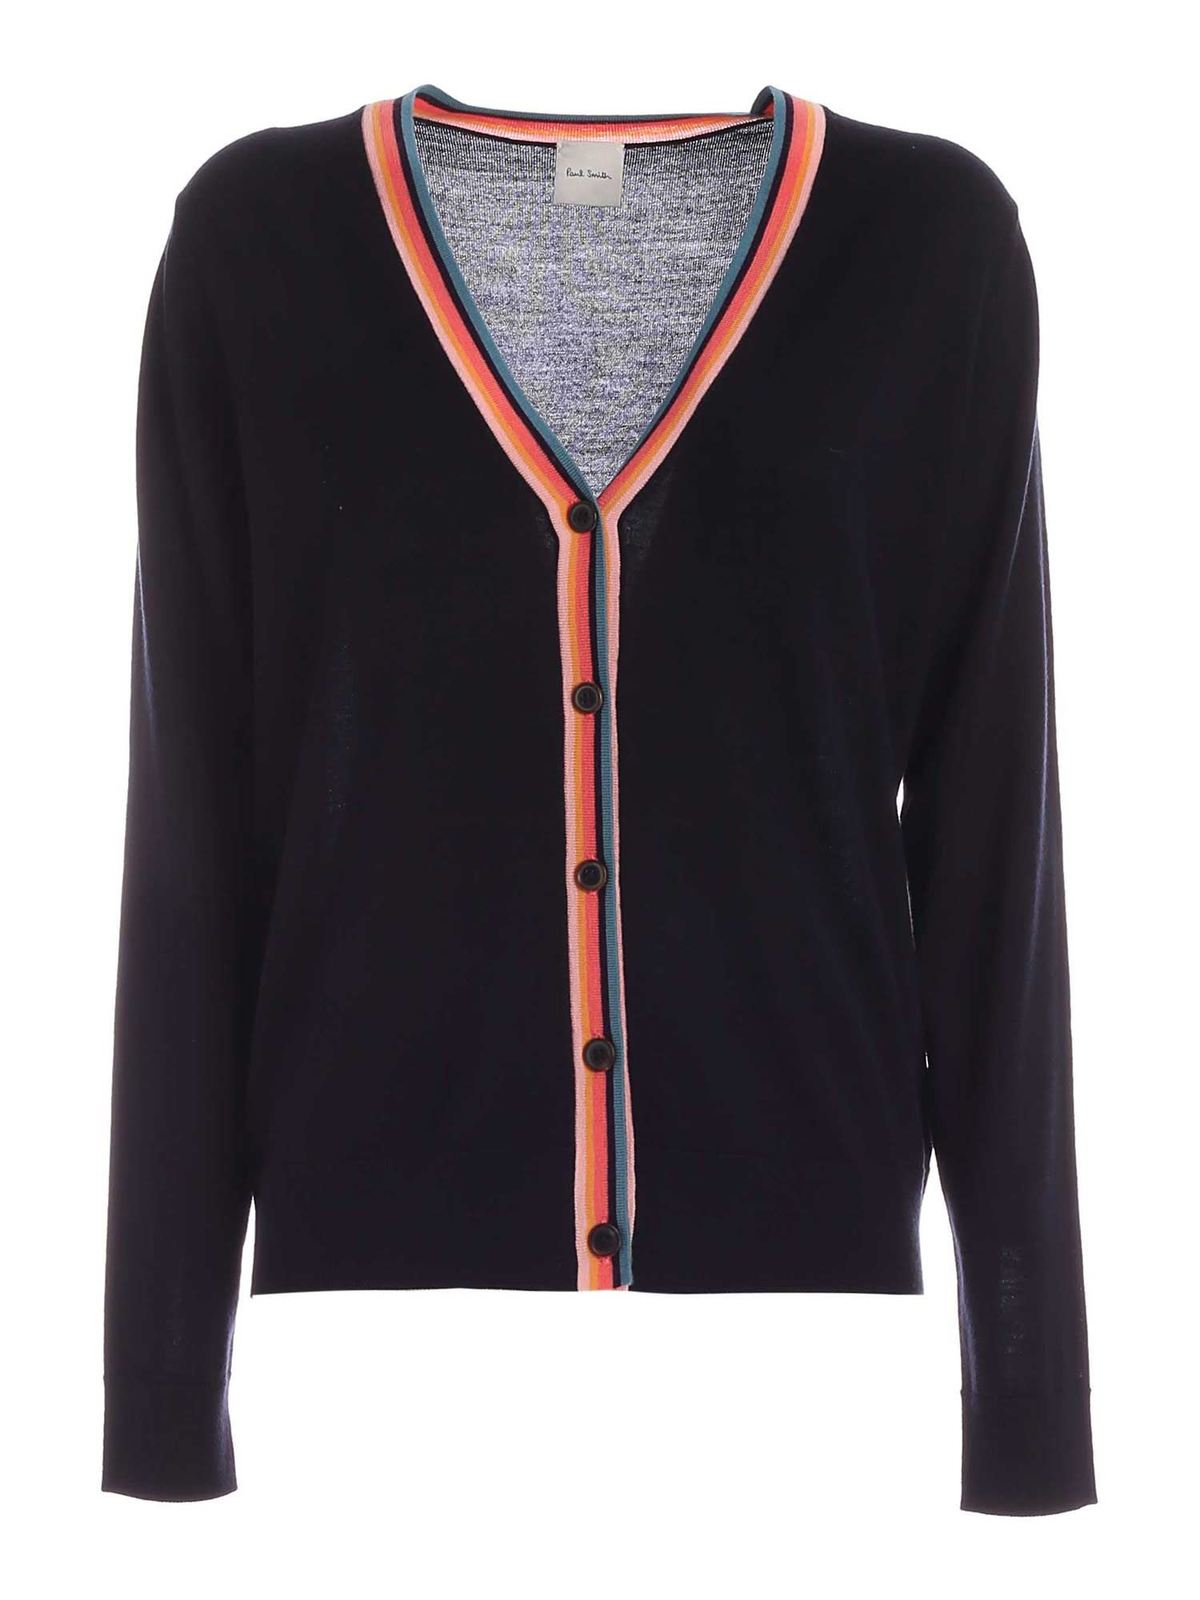 Paul Smith MULTICOLOR DETAILS CARDIGAN IN DARK BLUE